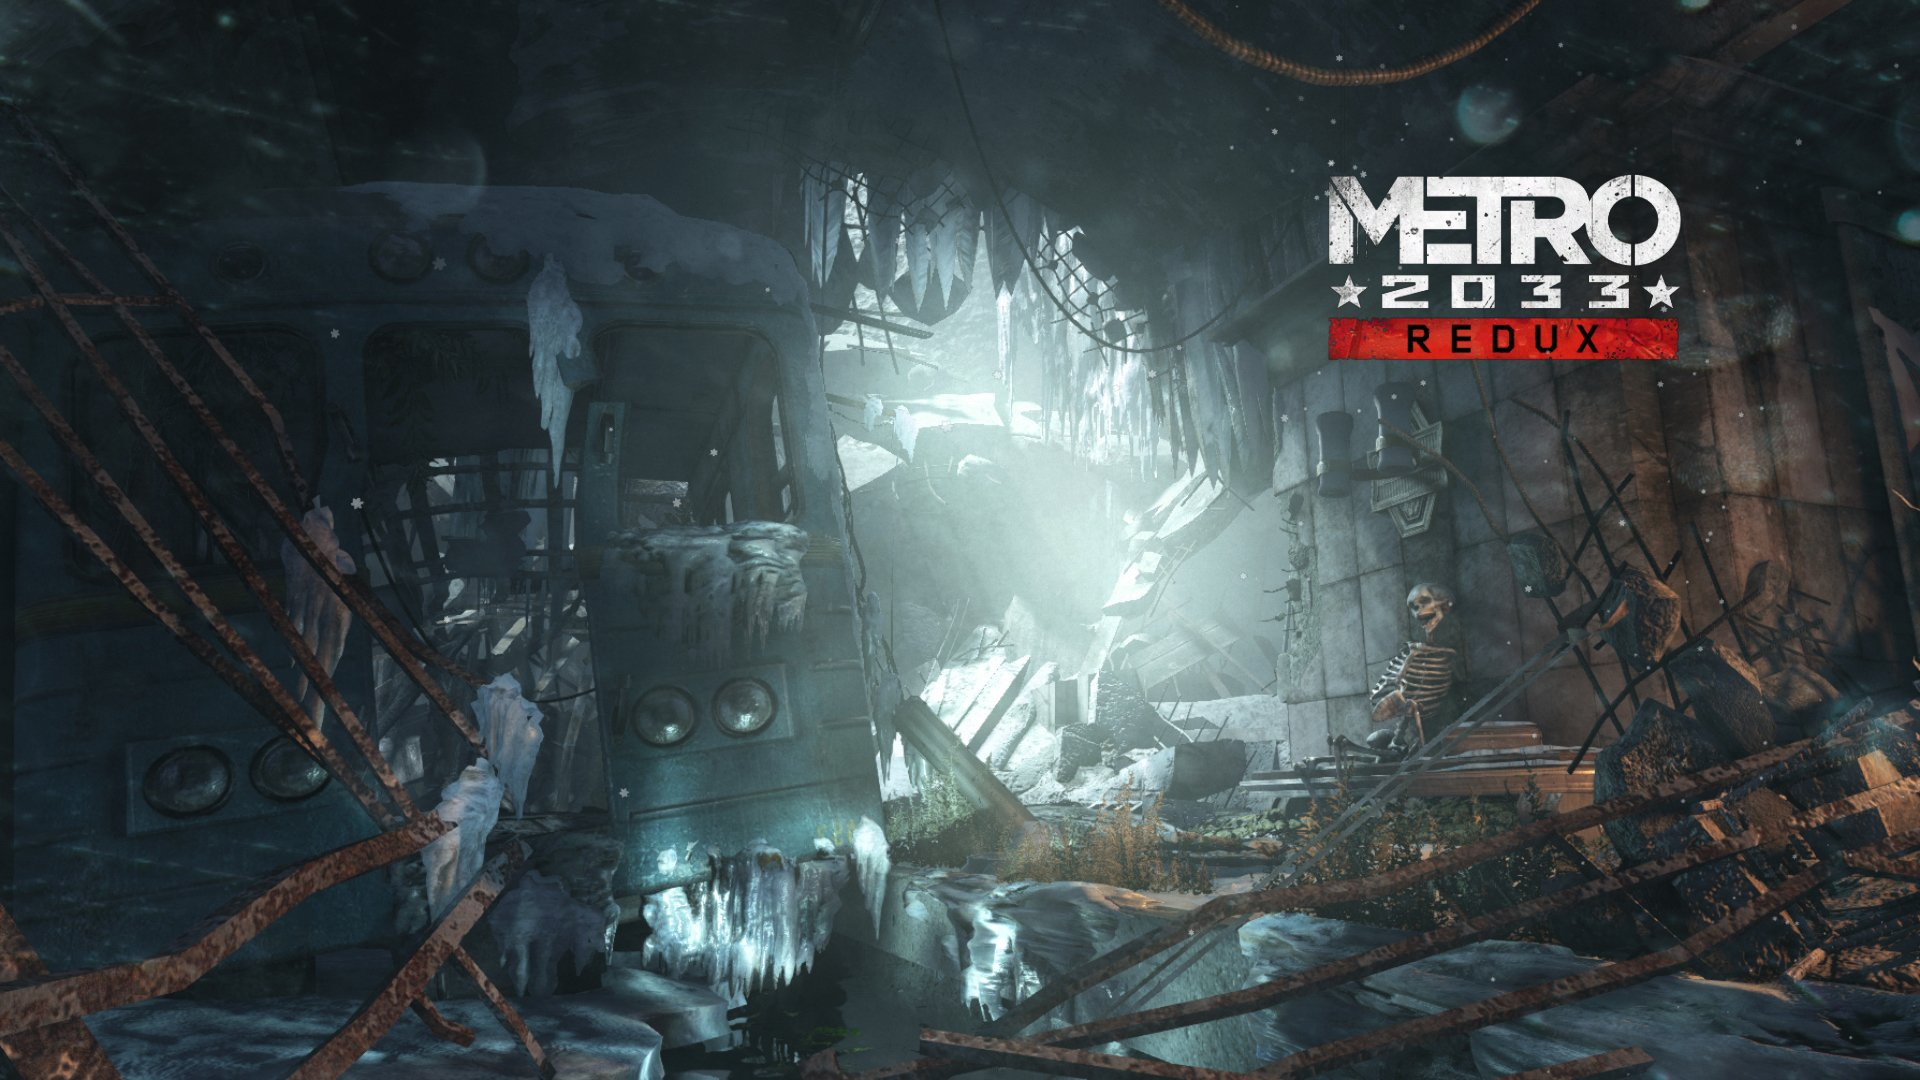 Metro 2033 Redux Hd Wallpaper Background Image 1920x1080 Id